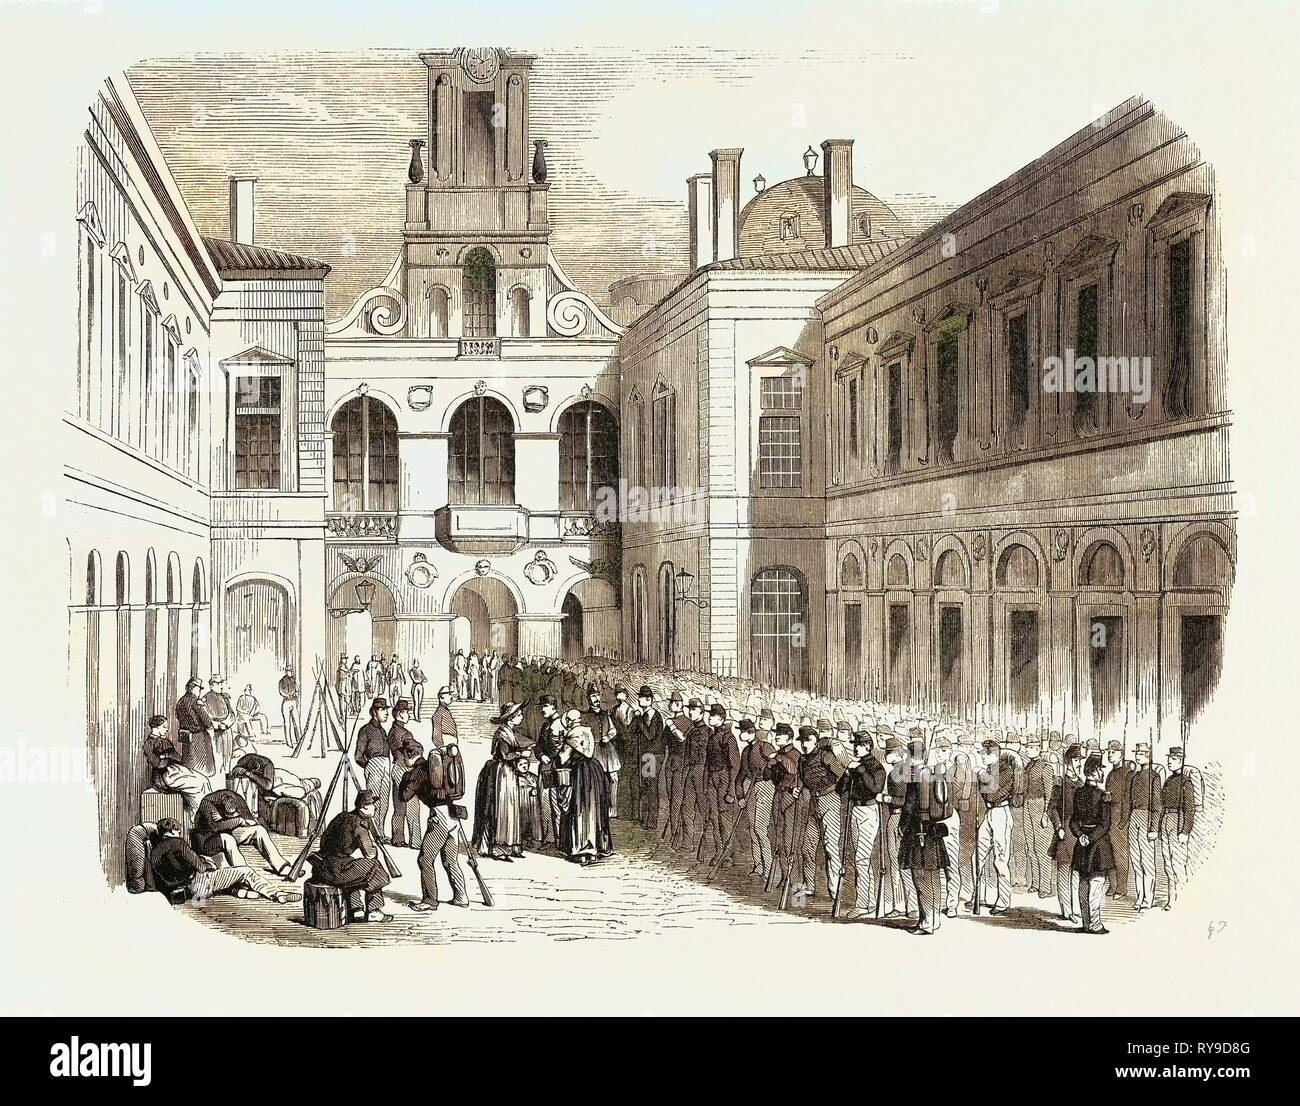 Inspection, in the Courtyard of the Townhall of Lyon, the Young Soldiers Sent to Crimea. 1855. France. Engraving - Stock Image